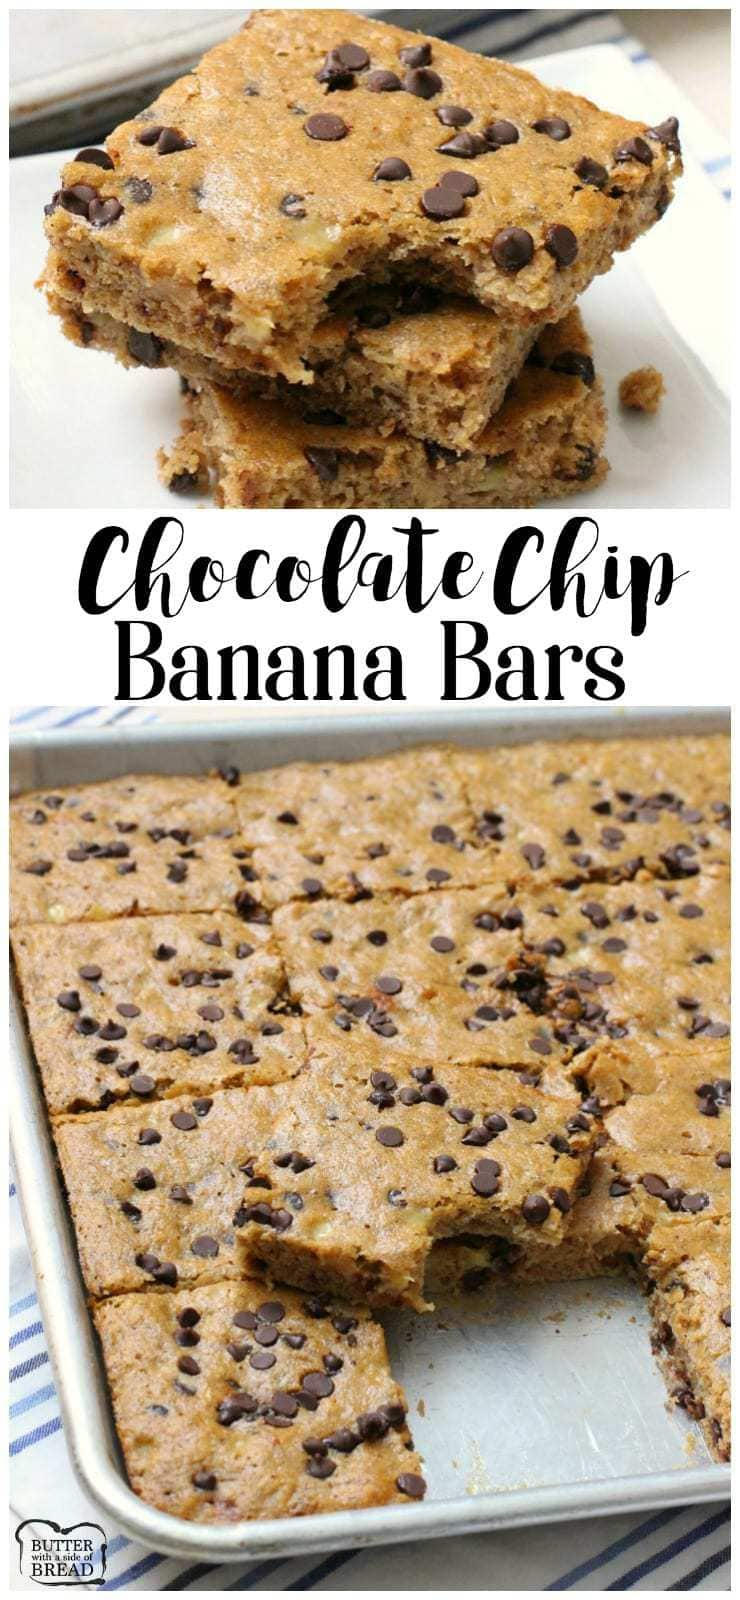 Chocolate Chip Banana Bars Butter With A Side Of Bread Choco Chips Are Delicious Filling And Perfect For Any Time Packed